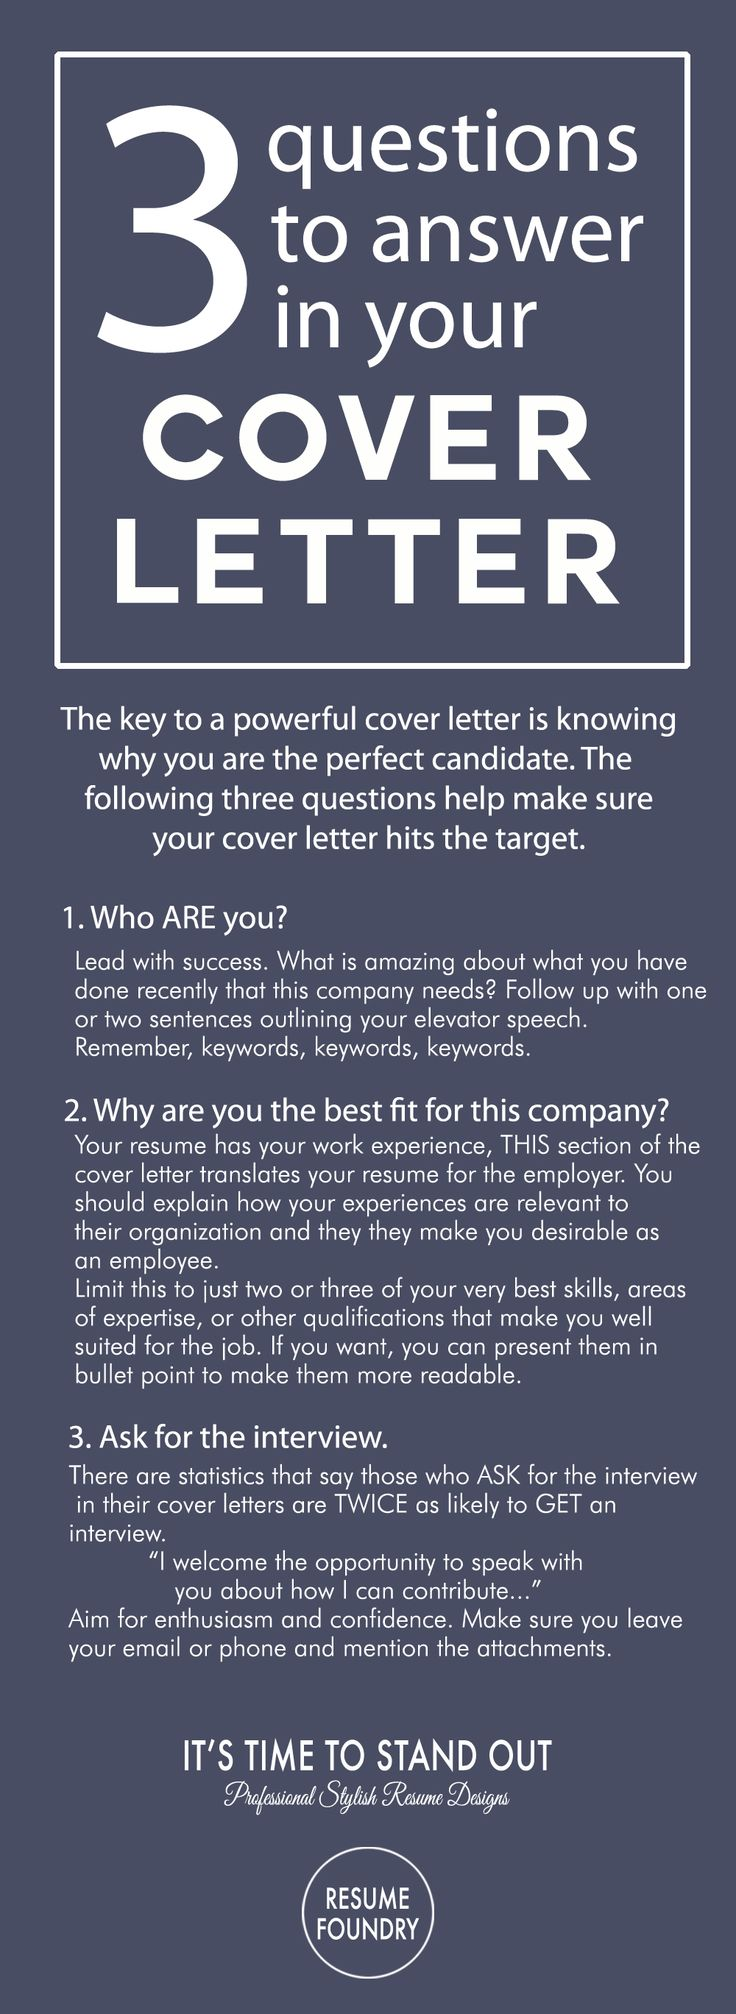 25 unique cover letters ideas on pinterest cover letter tips cover letter tips outline how to write a cover letter madrichimfo Choice Image